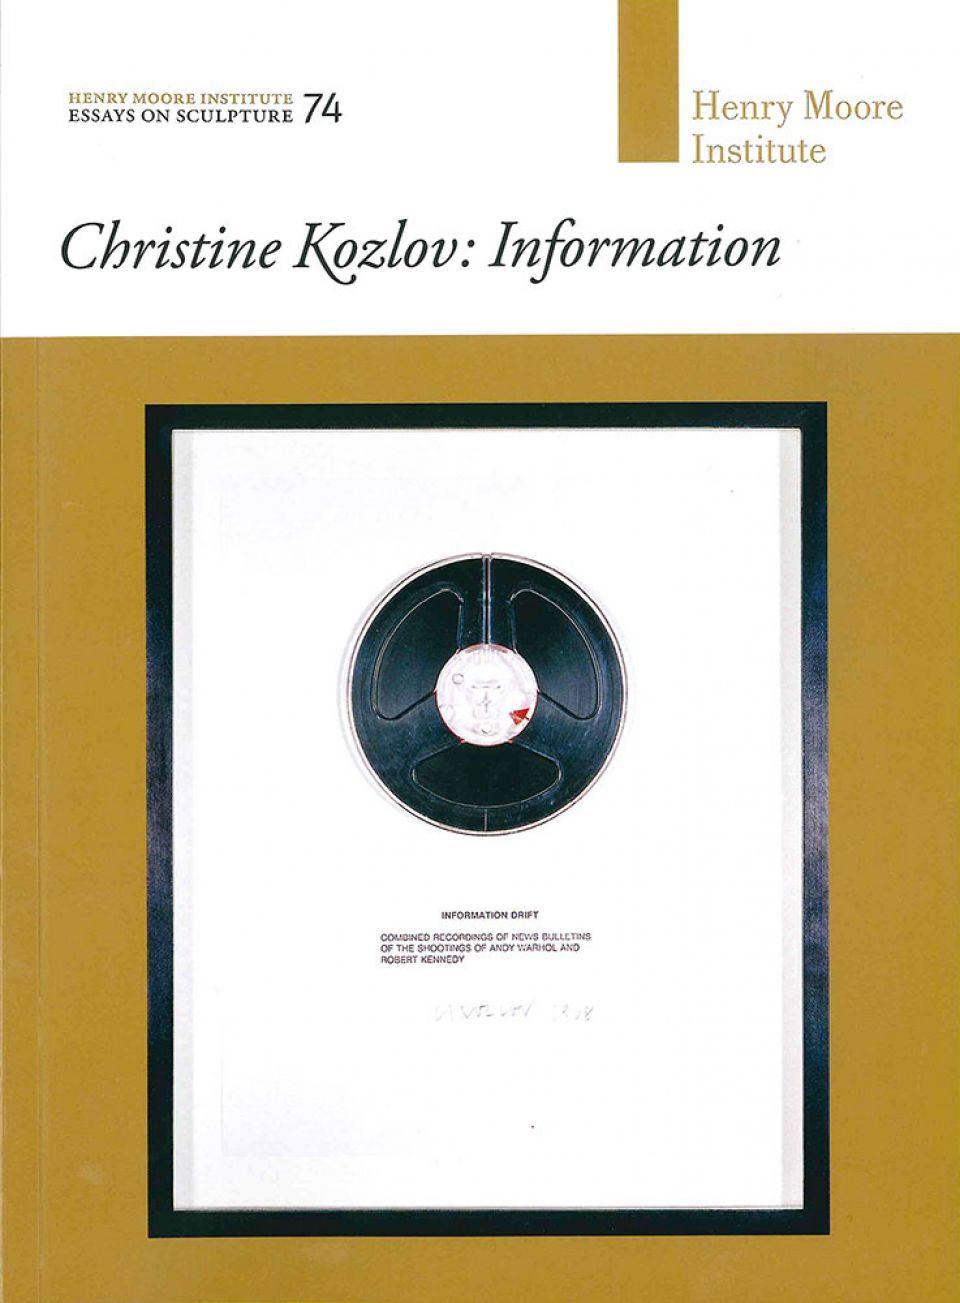 Christine Kozlov: Information (No. 74)